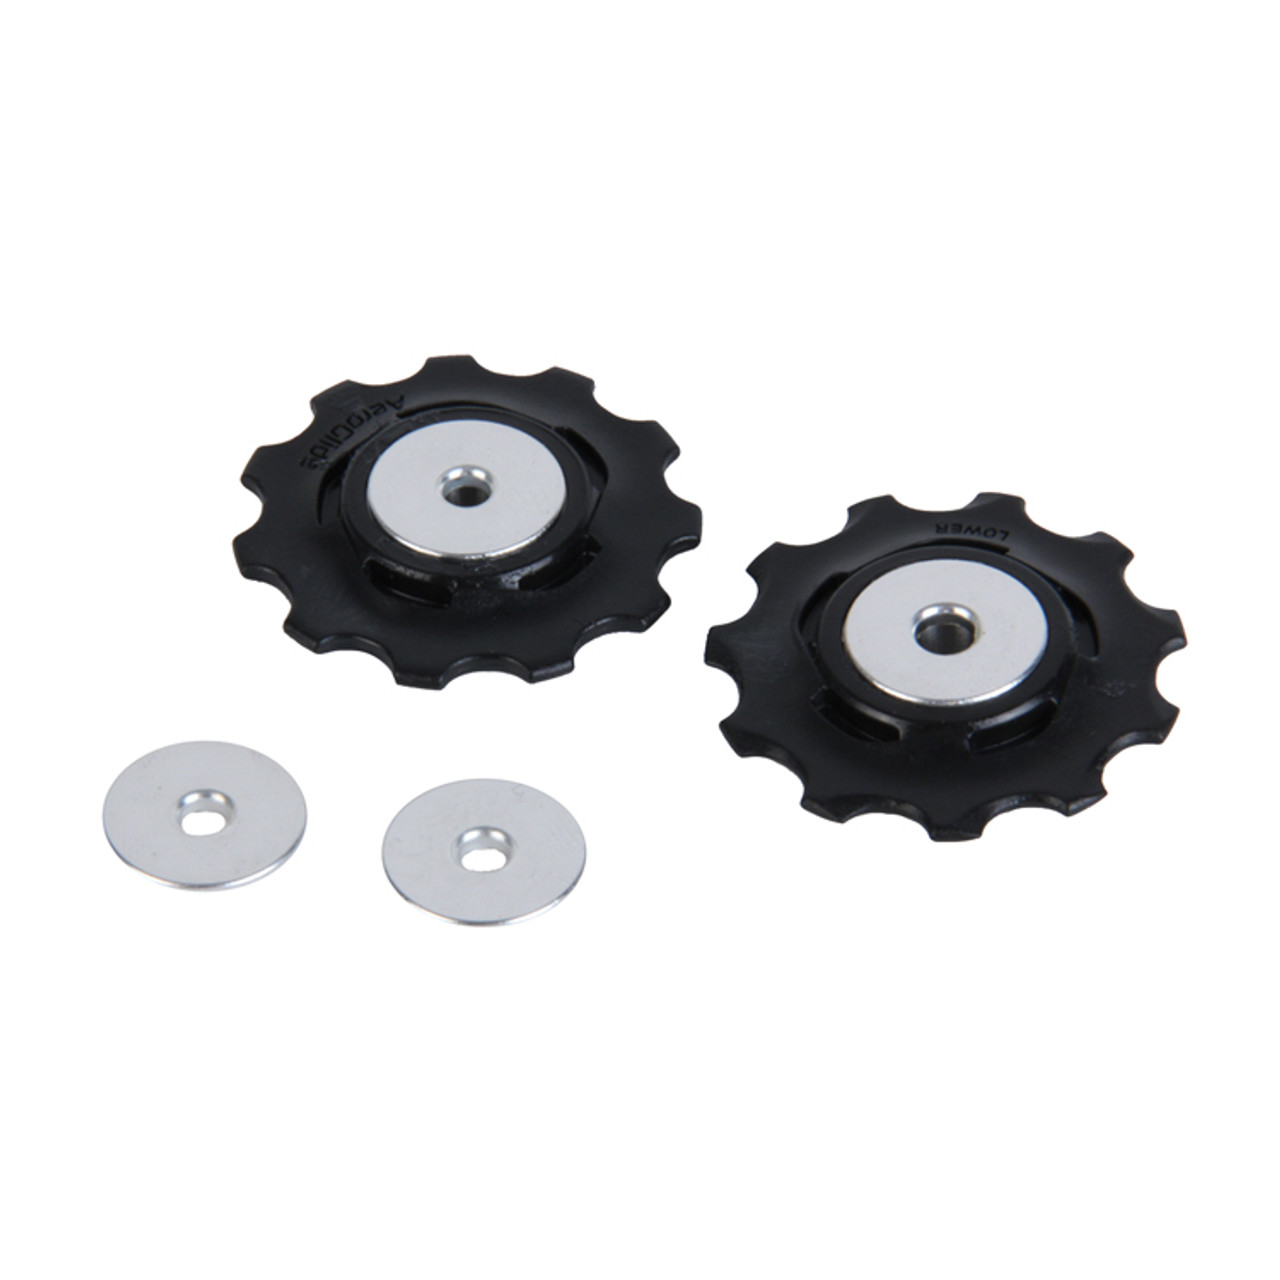 SRAM Force Rival Apex 10 Speed Rear Derailleur Pulley Kit